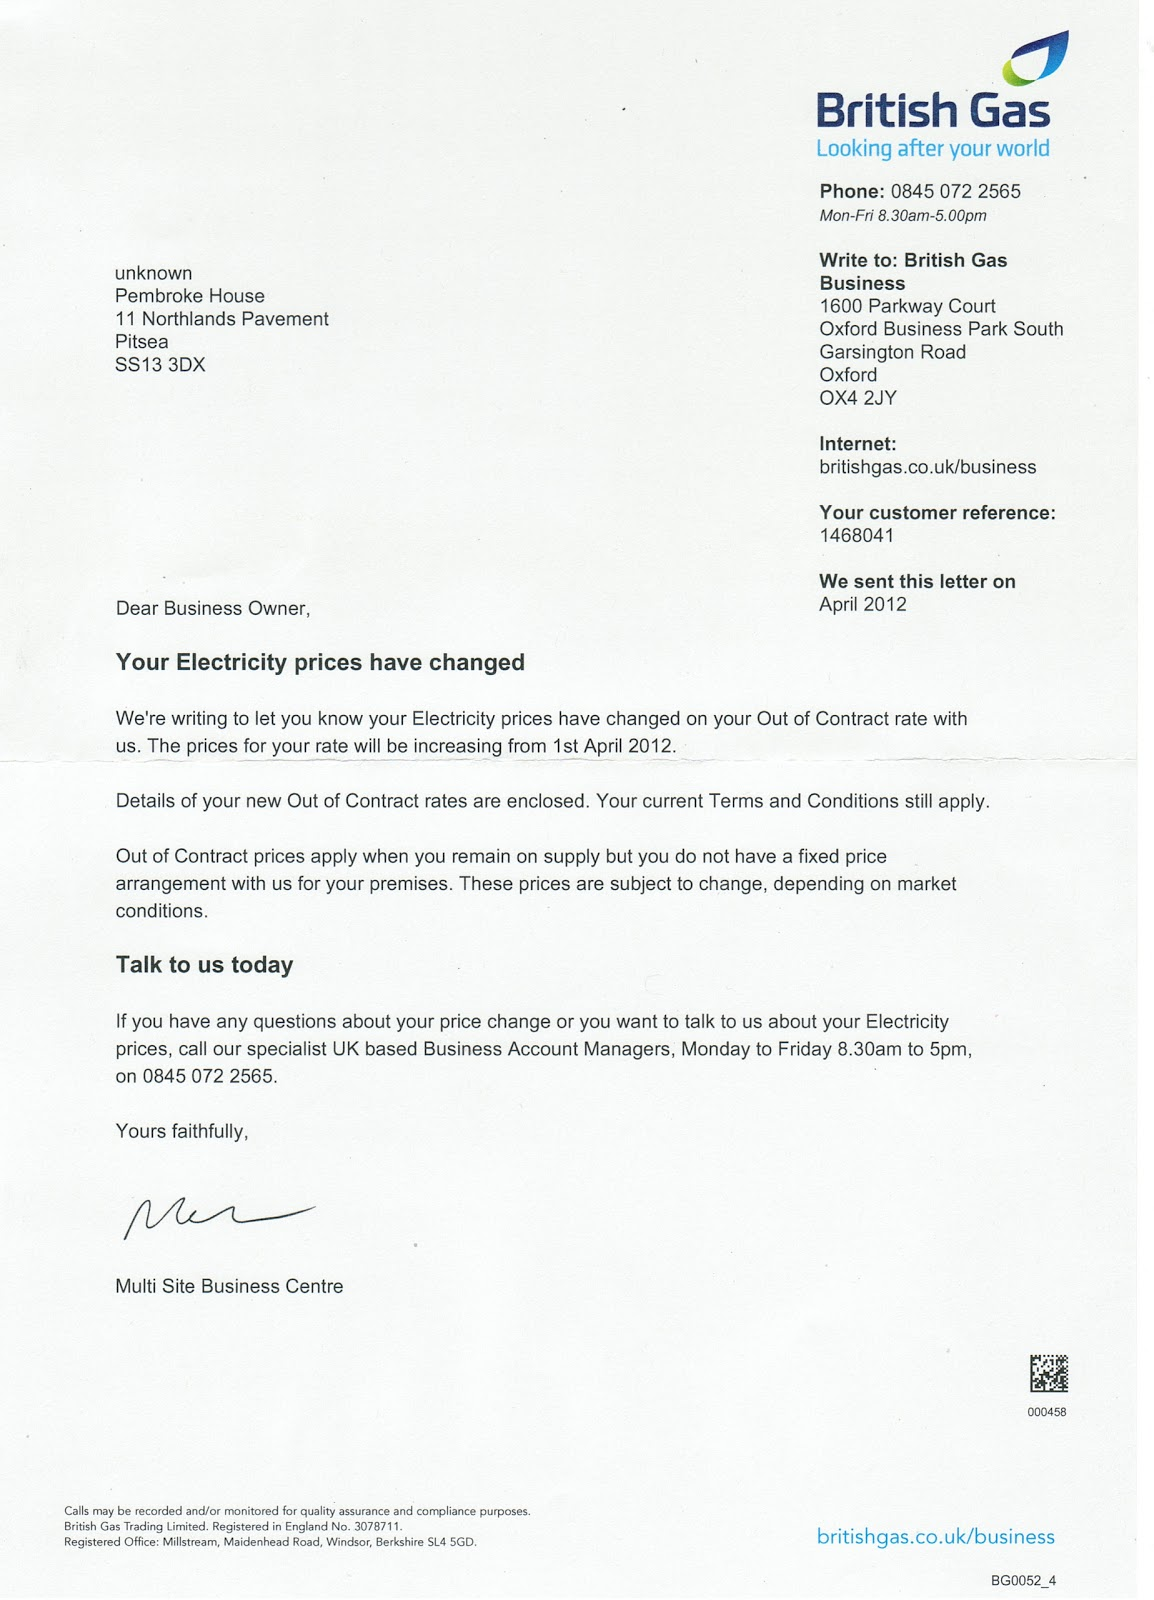 Cover letter british gas - pacesoftware.in